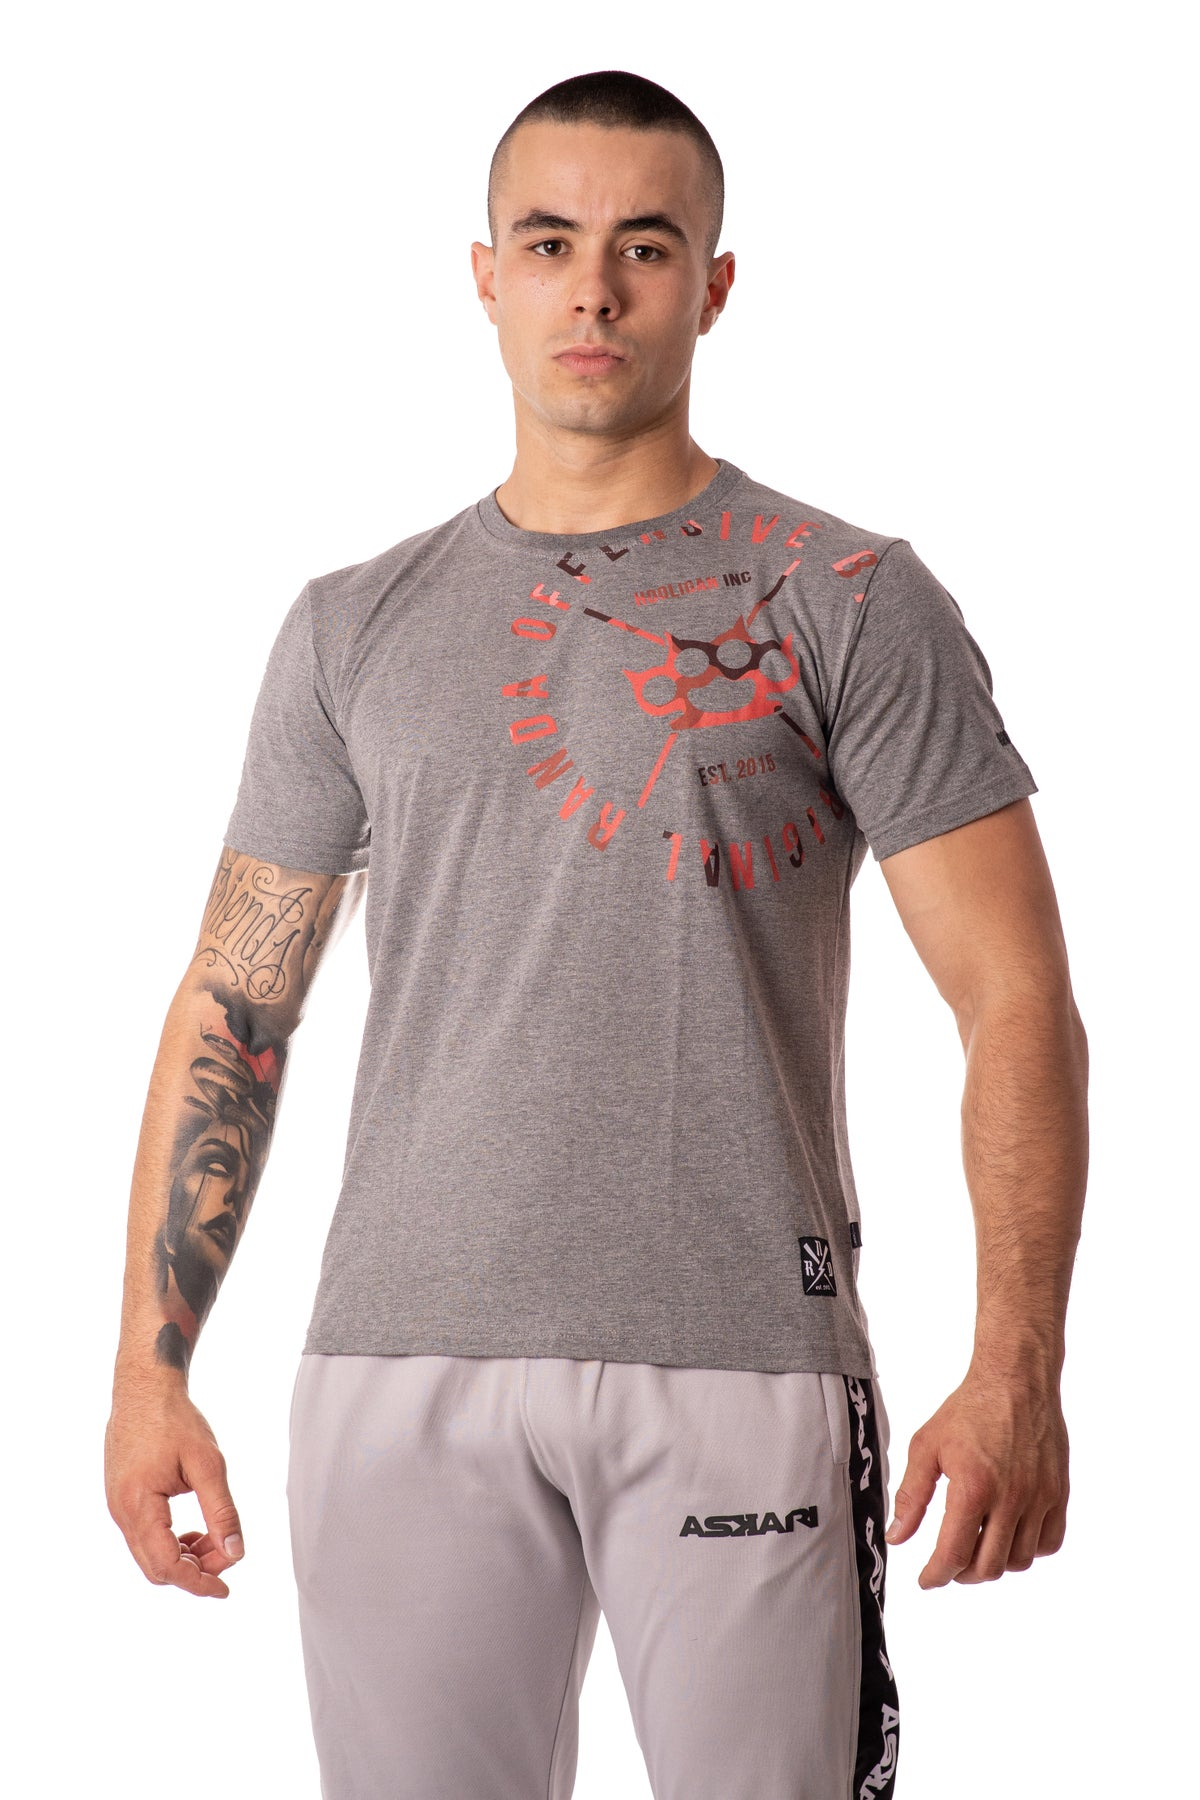 Image of LOOKING 4 SCONTRI T-SHIRT